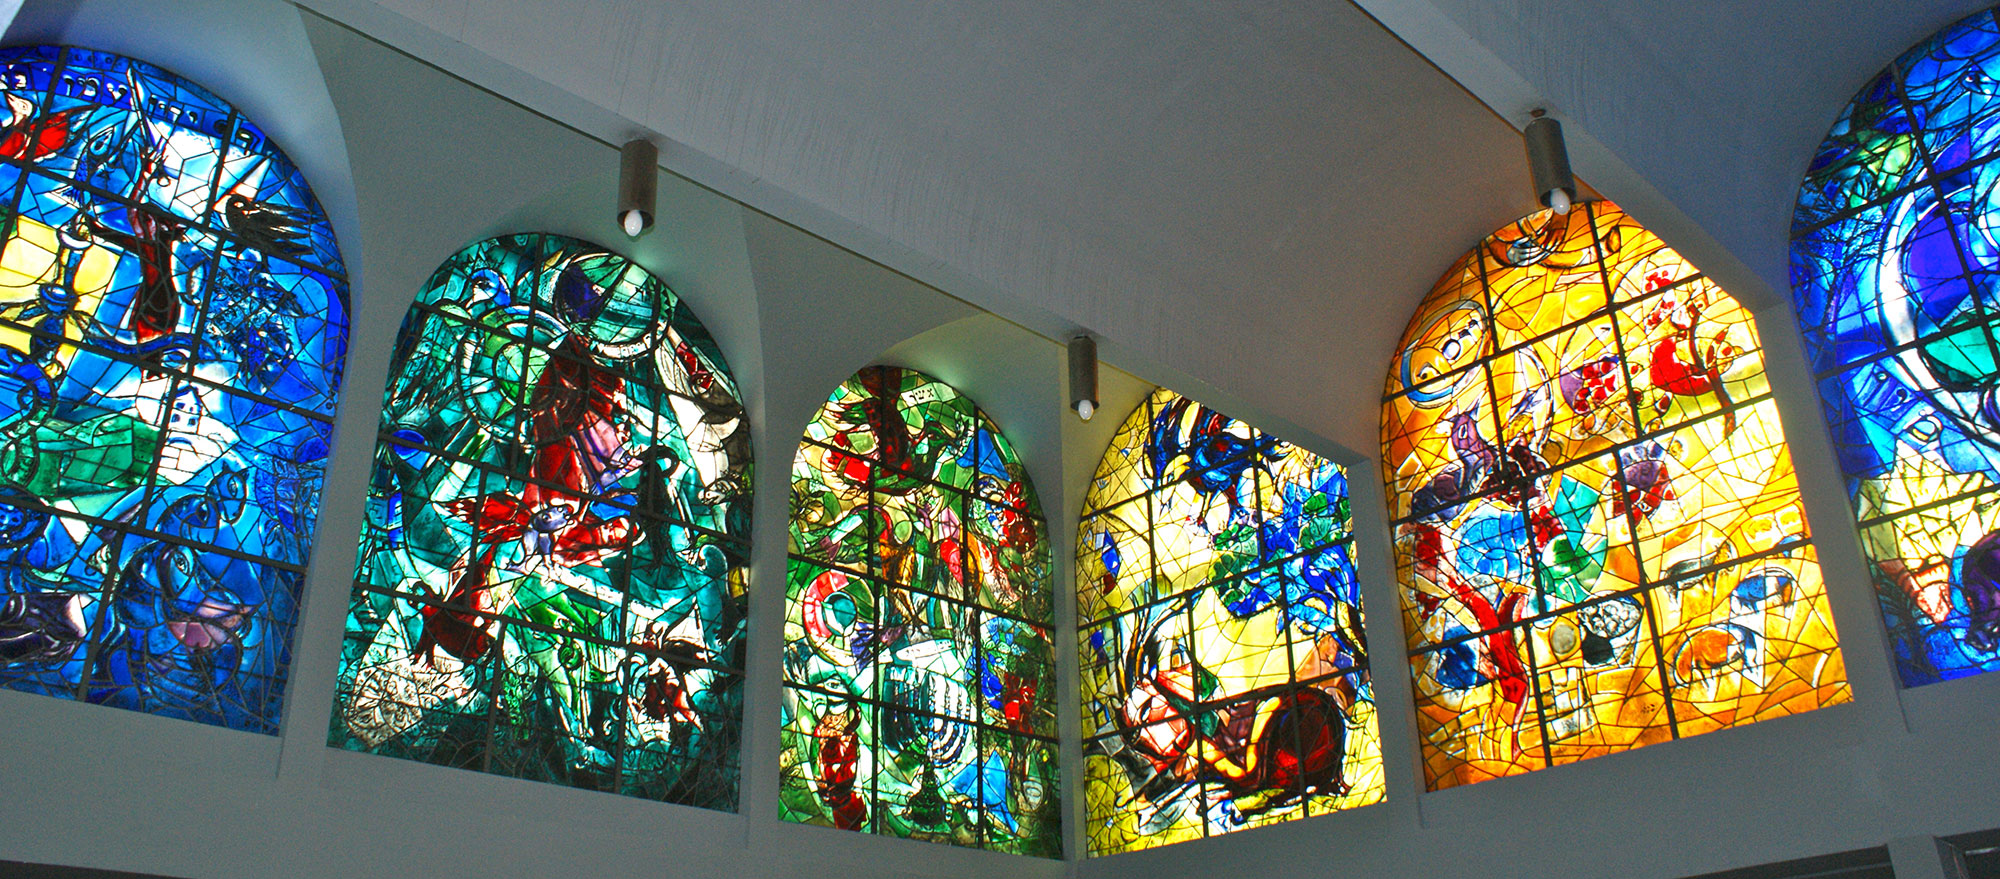 1959-stained-glass-windows-Hadassah-Hebrew-University-Medical-Centre